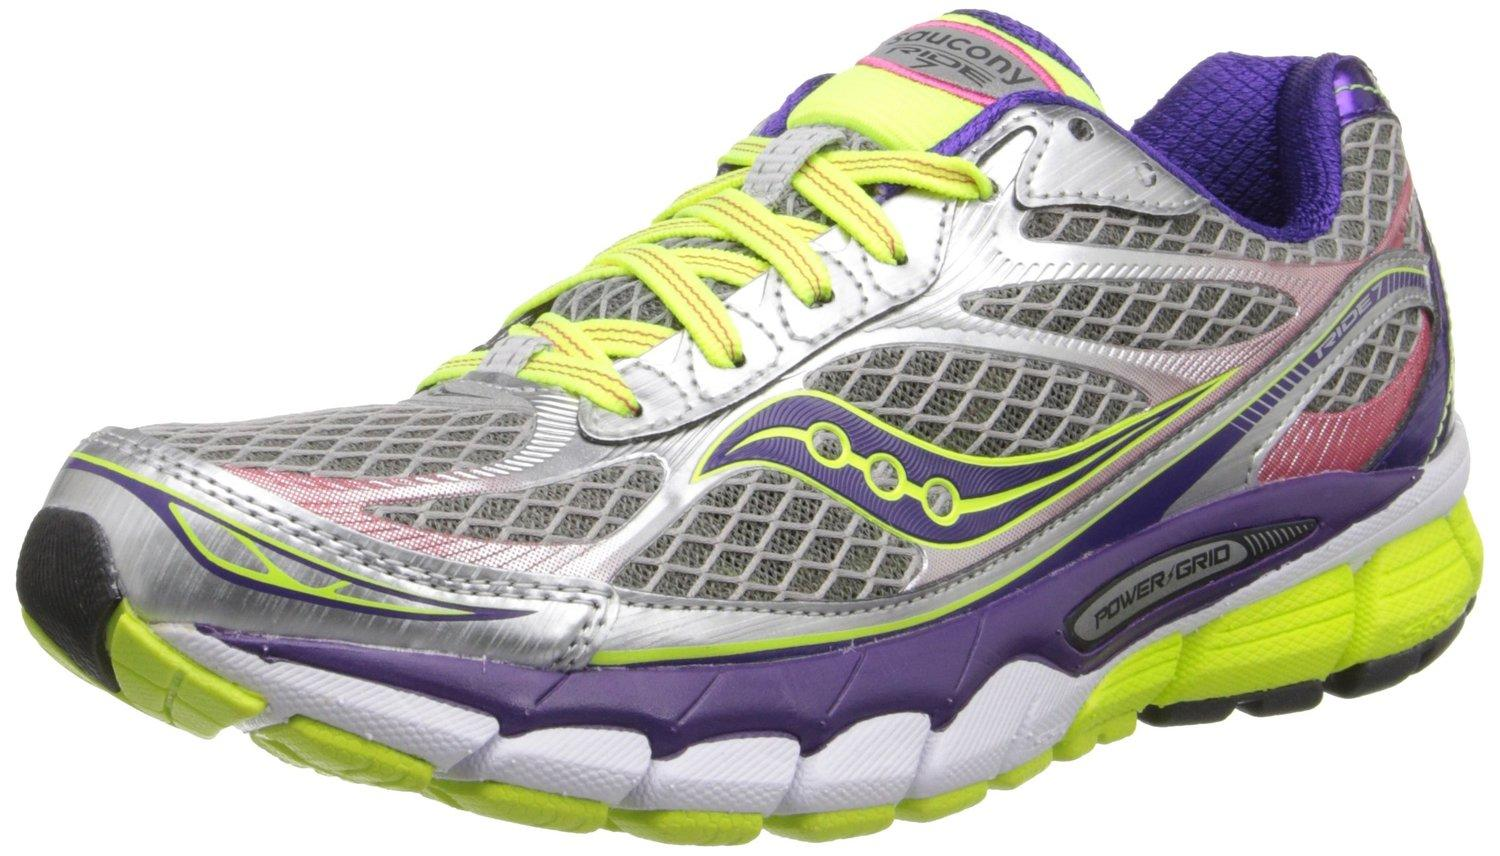 98fa65d8e8db Buy saucony cortana 4 womens yellow   Up to OFF72% Discounted